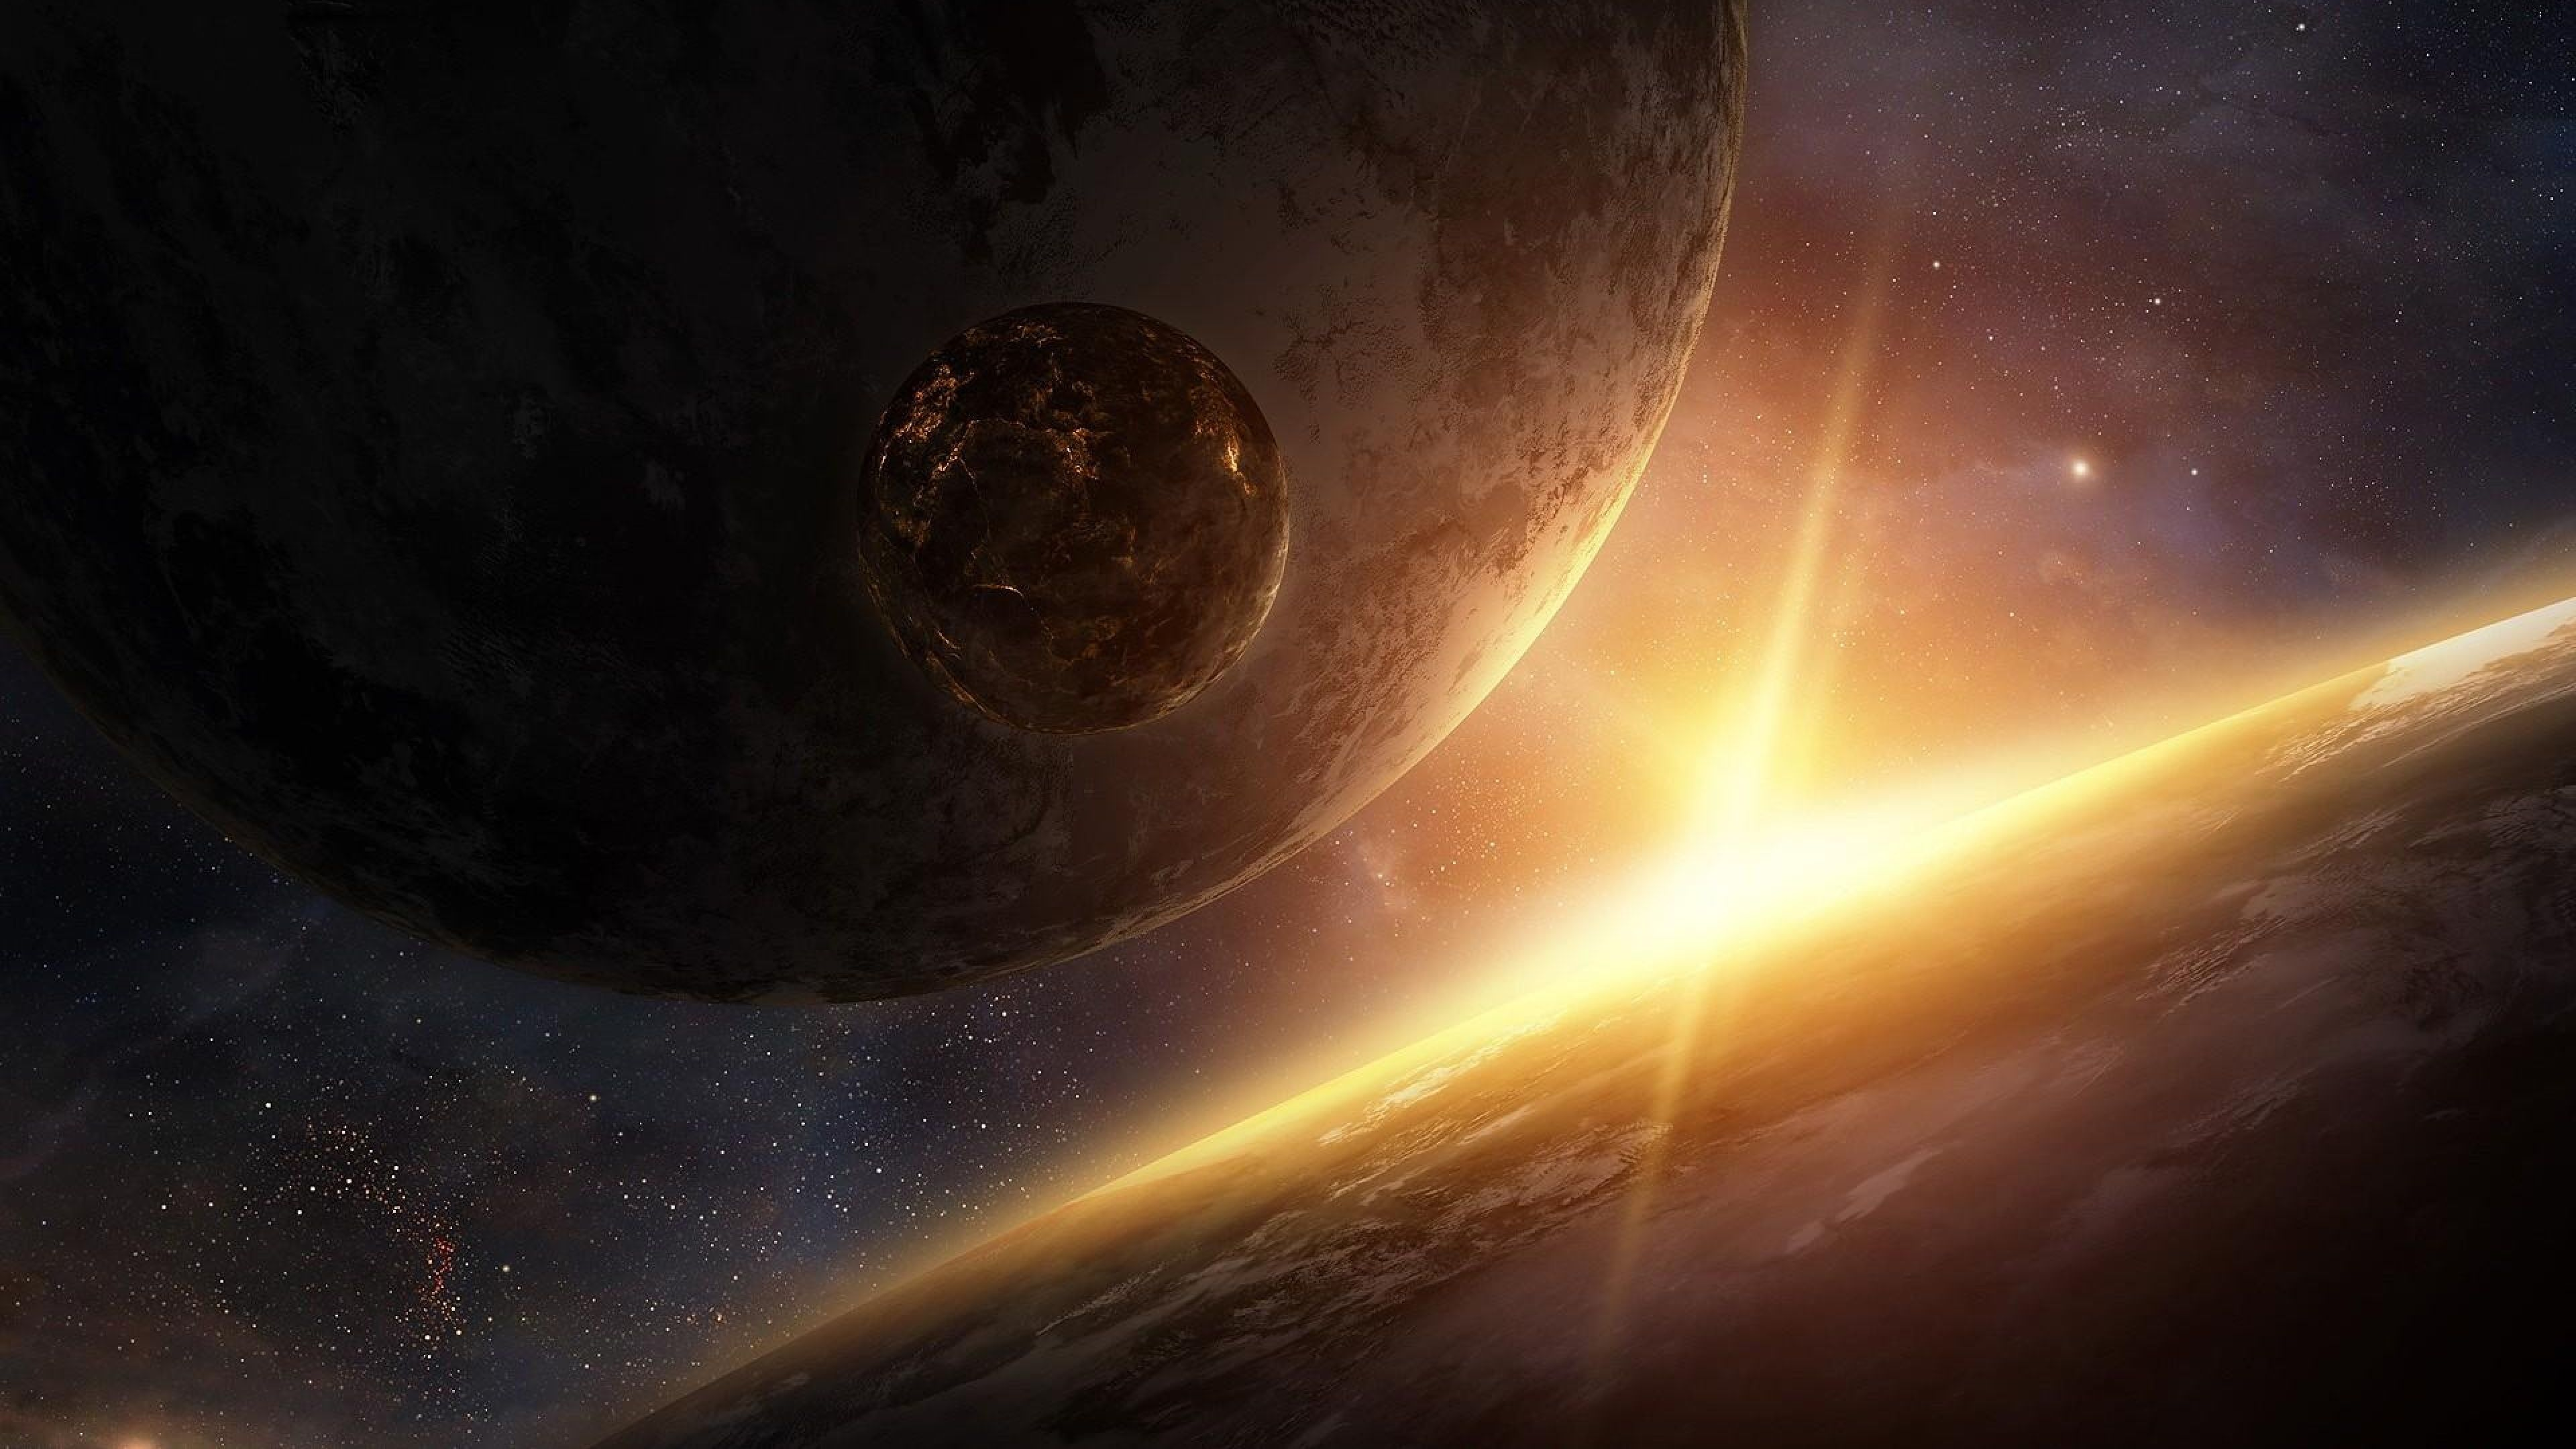 space wallpapers hd universe wallpapers planet wallpapers